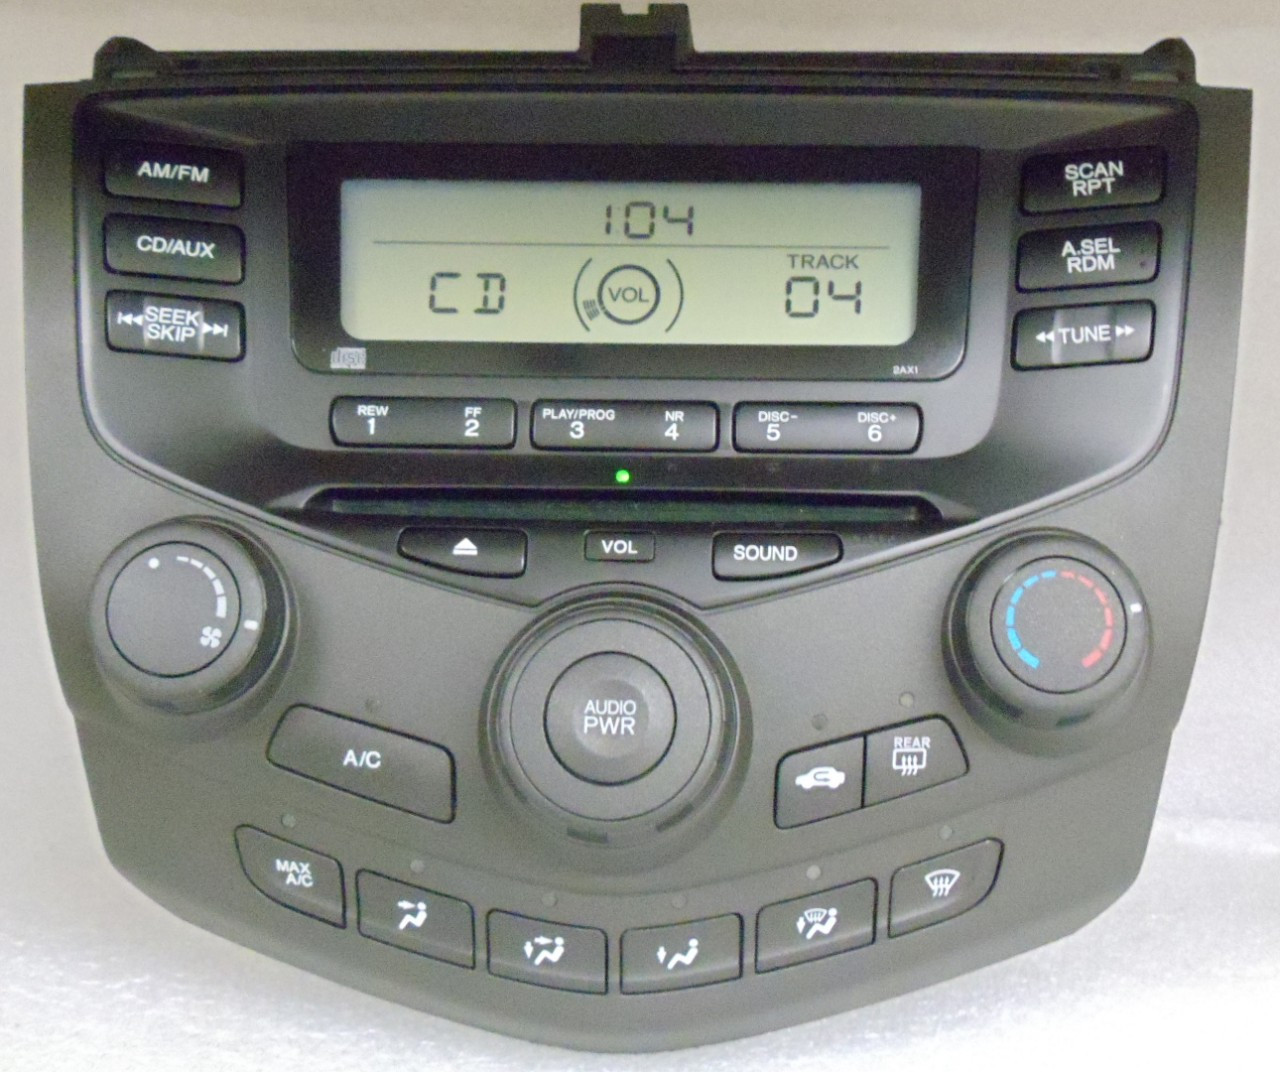 2aa0 2003 04 05 06 2007 honda accord radio cd player. Black Bedroom Furniture Sets. Home Design Ideas